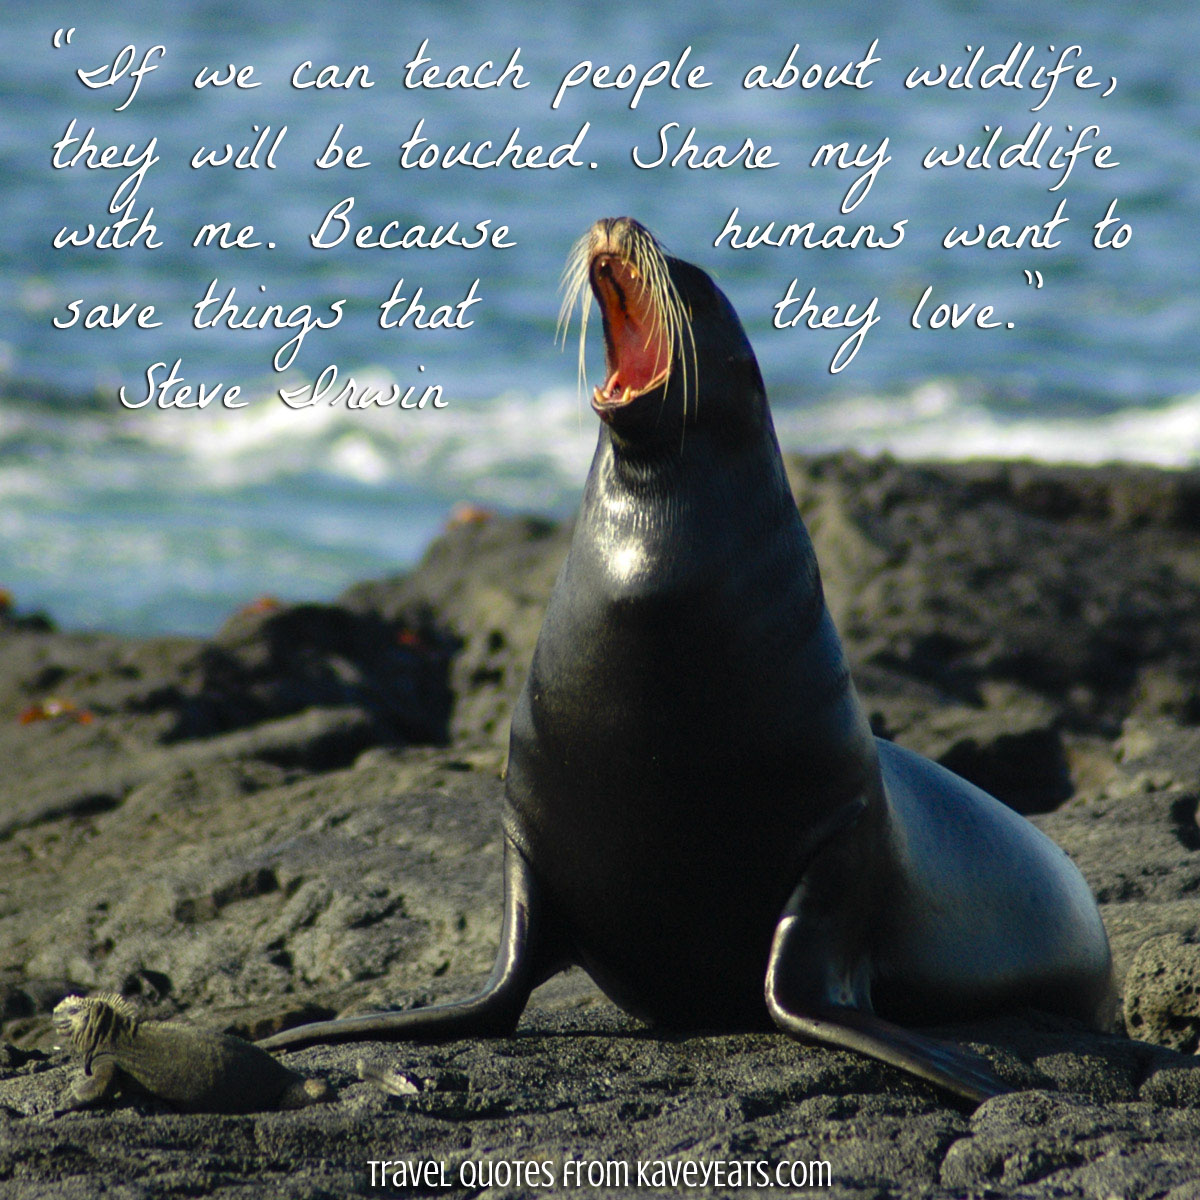 """Sea lion on rocky shore in Galapagos Islands - """"If we can teach people about wildlife, they will be touched. Share my wildlife with me. Because humans want to save things that they love."""" ~Steve Irwin"""